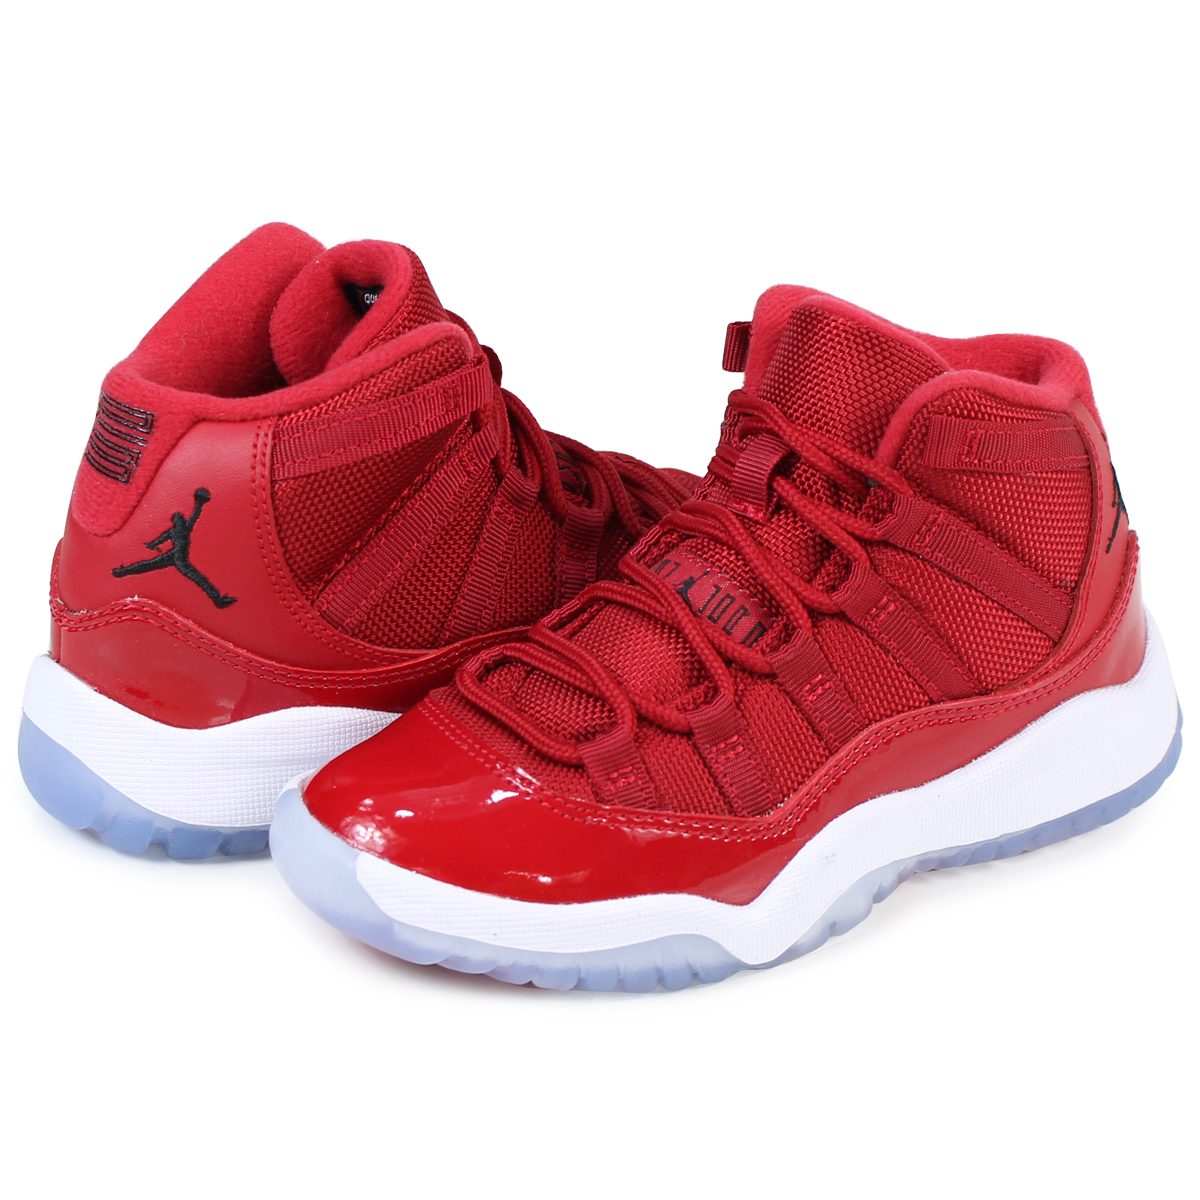 low priced 484ad 5c58a NIKE AIR JORDAN 11 BP WIN LIKE 96 Nike Air Jordan 11 kids sneakers  378,039-623 shoes red [load planned Shinnyu load in reservation product  12/22 ...